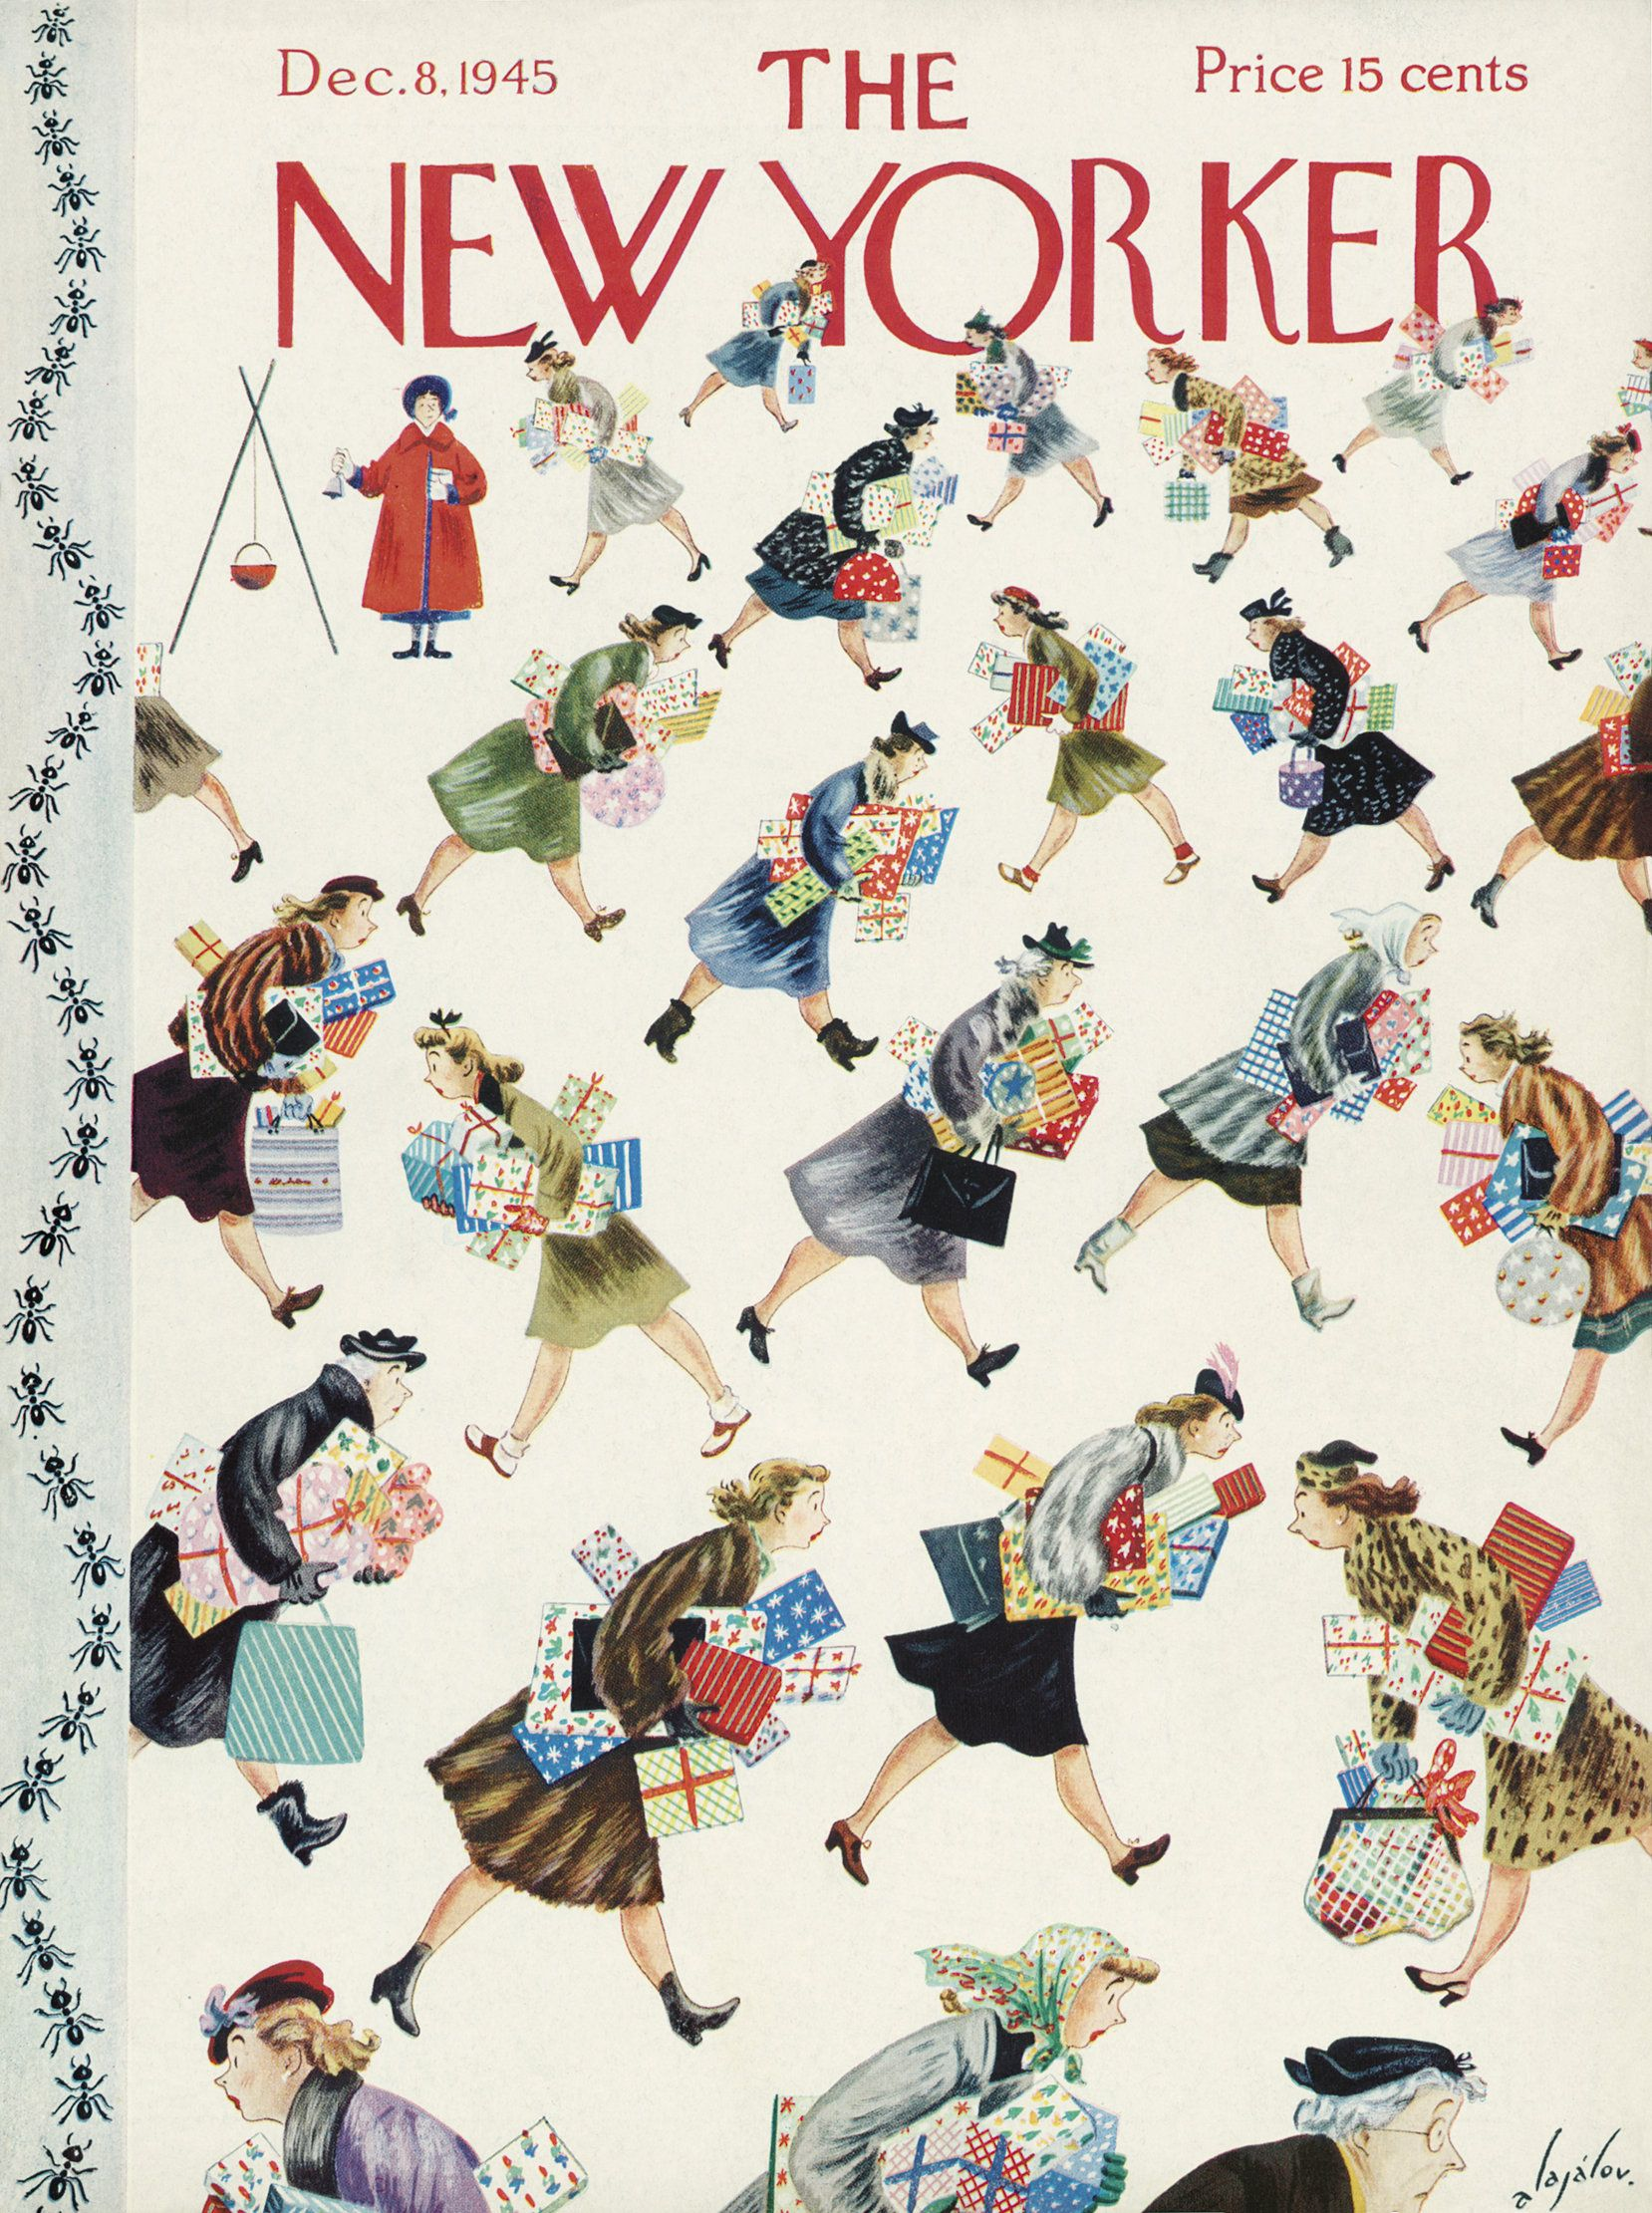 The New Yorker, 1945